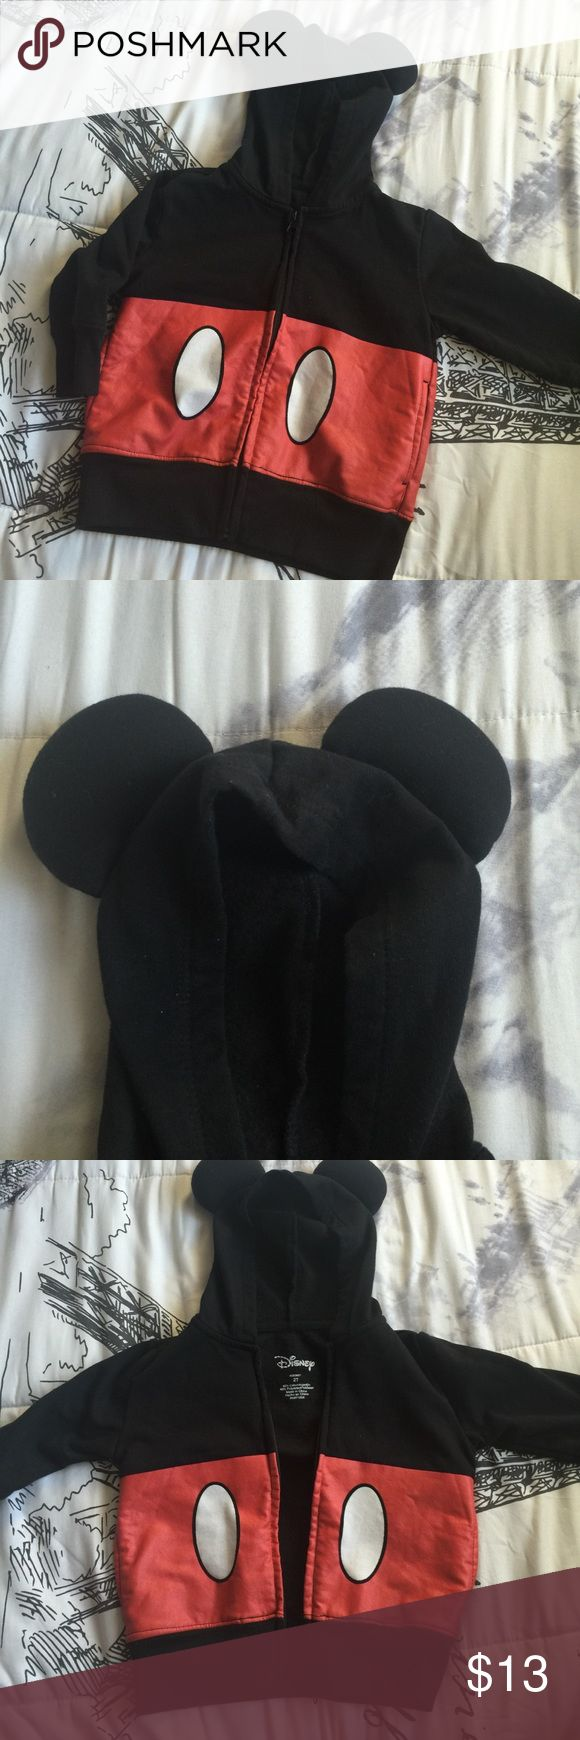 cute disney mickey mouse ears hood jacket 💕 very cute disney mickey mouse jacket! features a zipper and a hood with ears like mickey mouse. perfect for disney lovers! ❤️ fits a 2T. the red part feels like sort of an almost rough leathery material. no trades. tags: disneyland disney disney baby mickey mouse minnie mouse hoodie jacket outerwear black red Disney Jackets & Coats